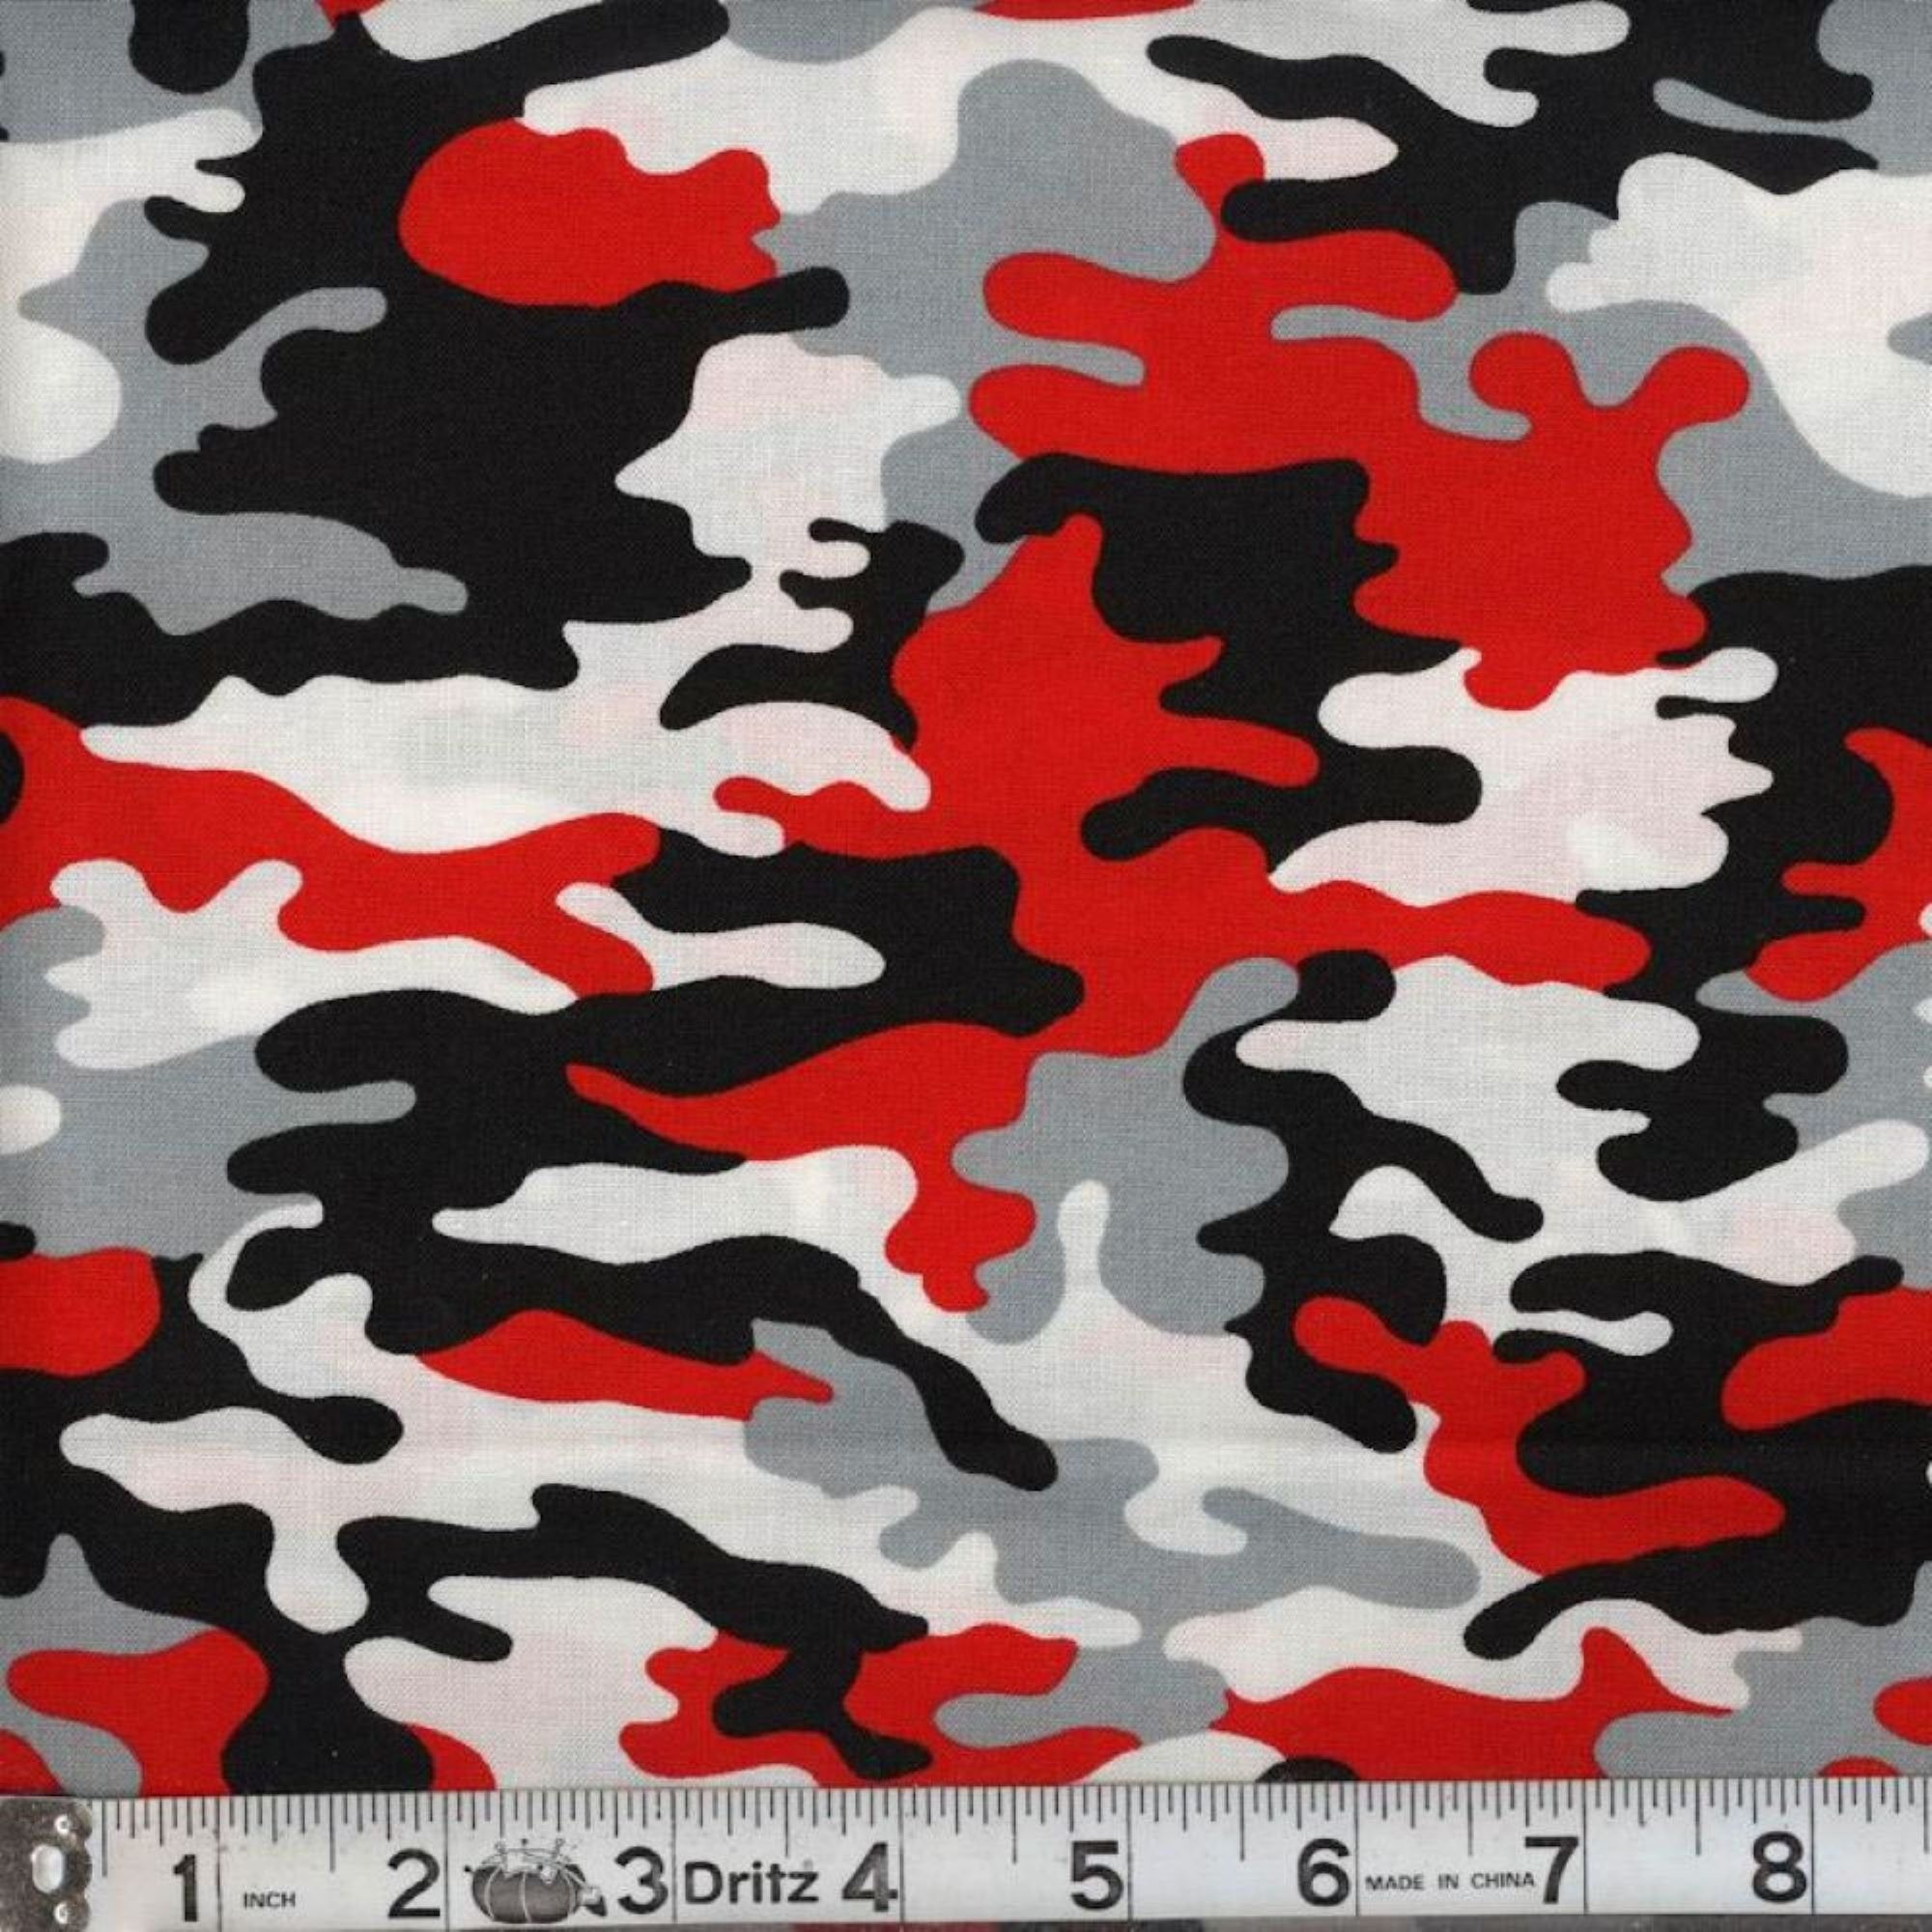 Real Red Camo Fabric 100 Cotton Fabric Fabric By The Yard Etsy In 2021 Black And Red Camouflage Map Fabric